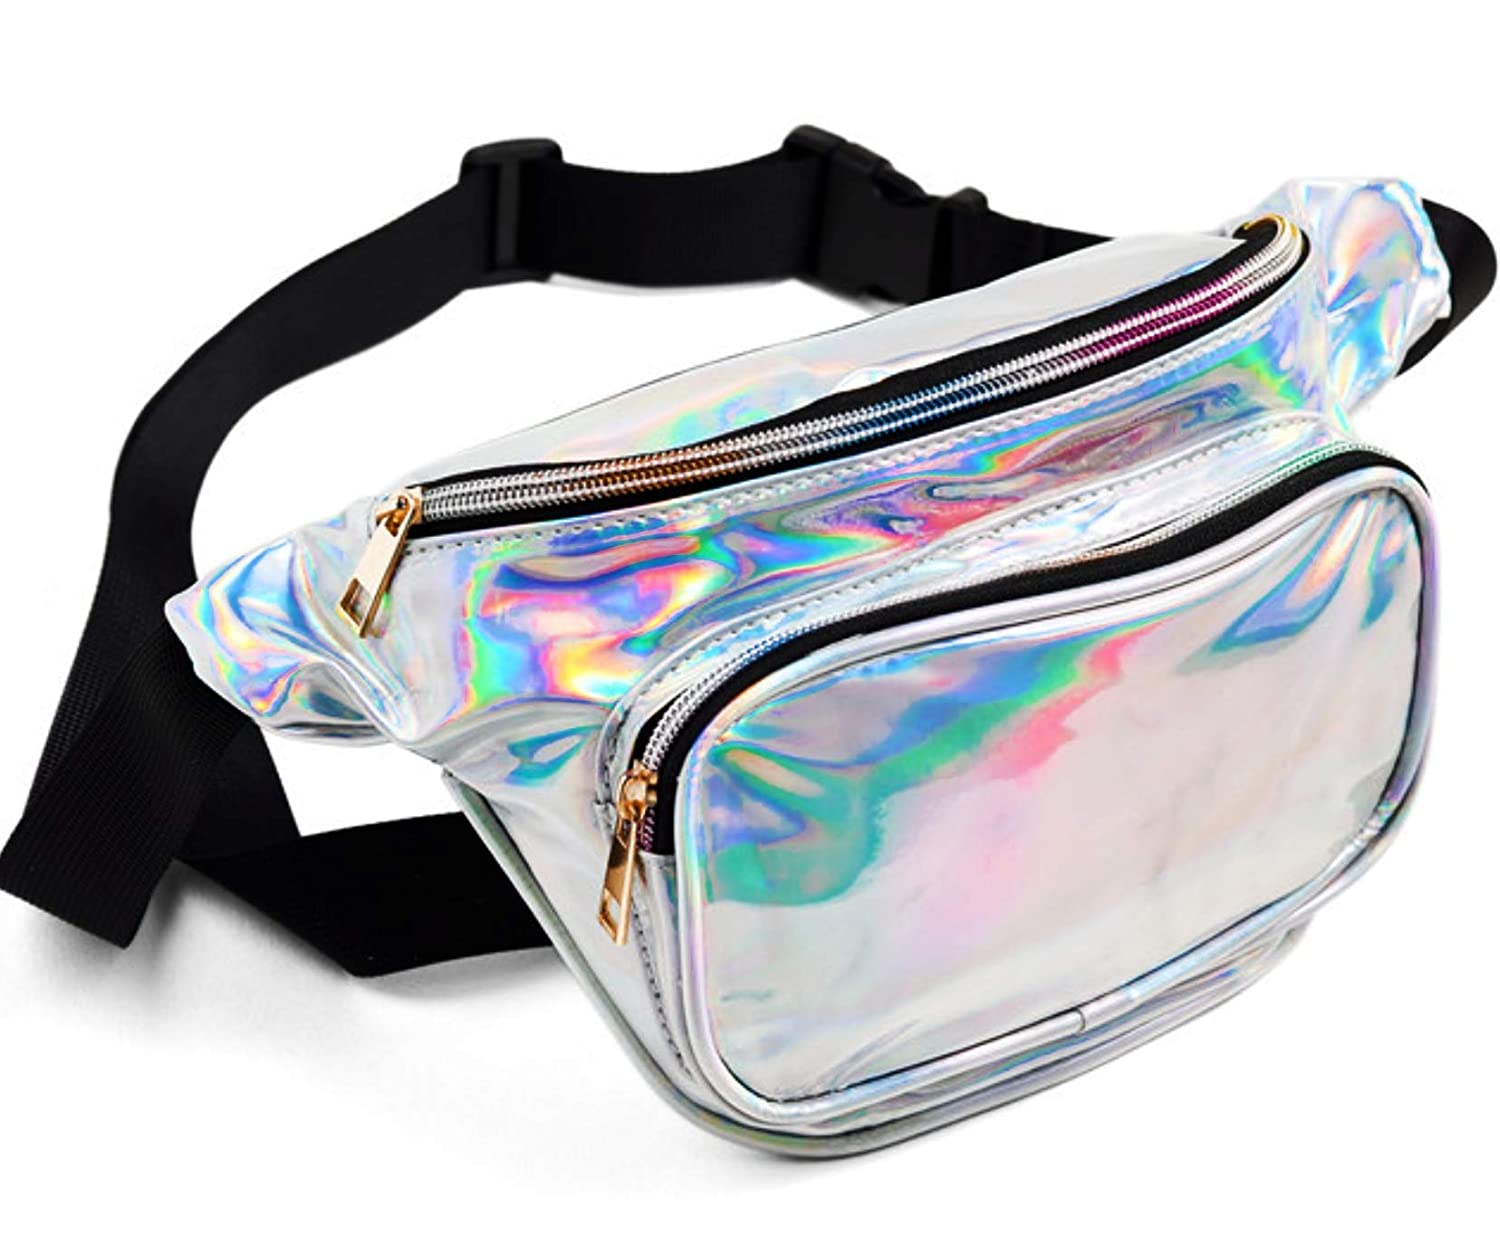 FANNYFAM Cute Holographic Fanny Pack - 80s Retro Vintage Style Waist Bag - Shiny Silver Metallic Iridescent. Unisex.